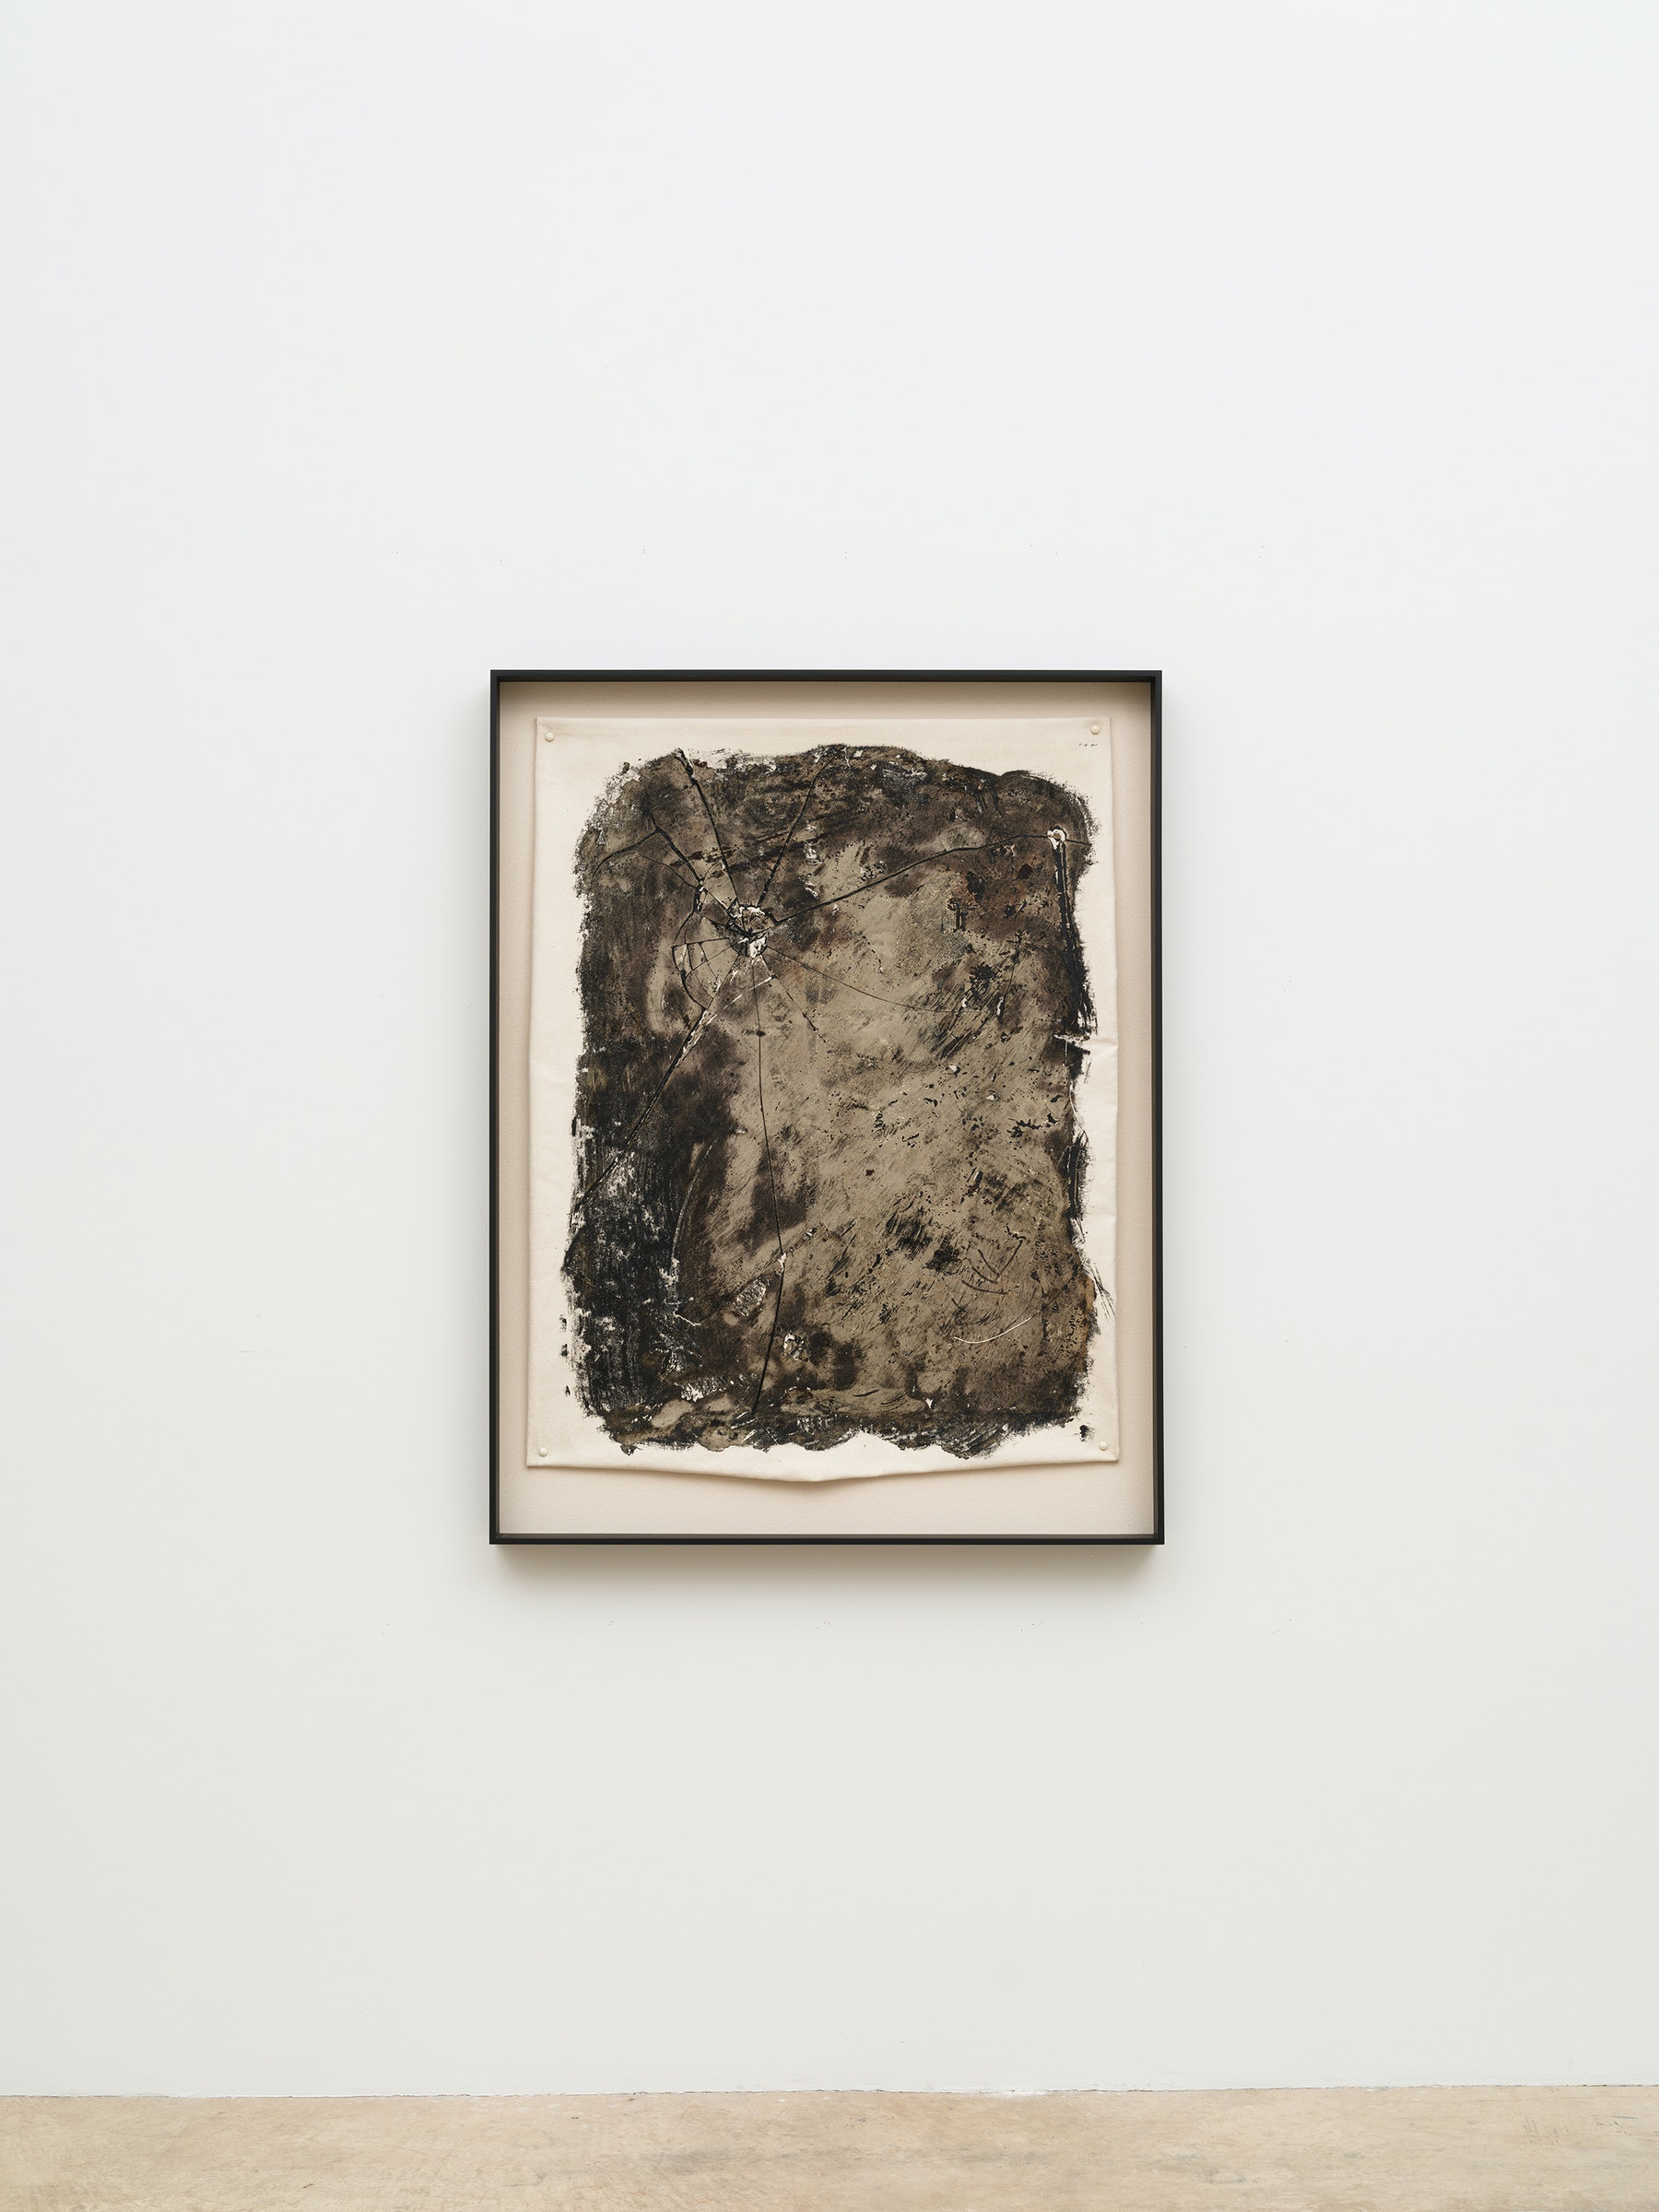 """Edgar Arceneaux """"Skinning the Mirror #5,"""" 2021 Silver nitrate, acrylic paint, and glass on canvas 48 ³⁄₄"""" x 37 ¹⁄₂"""" x 2 ³⁄₄"""" [HxWxD] (123.82 x 95.25 x 6.98 cm) framed; 40"""" x 33"""" [HxW] (101.6 x 83.82 cm) unframed Inventory #ARC641 Courtesy of the artist and Vielmetter Los Angeles Photo credit: Jeff McLane / Xiaoyue Zhang"""